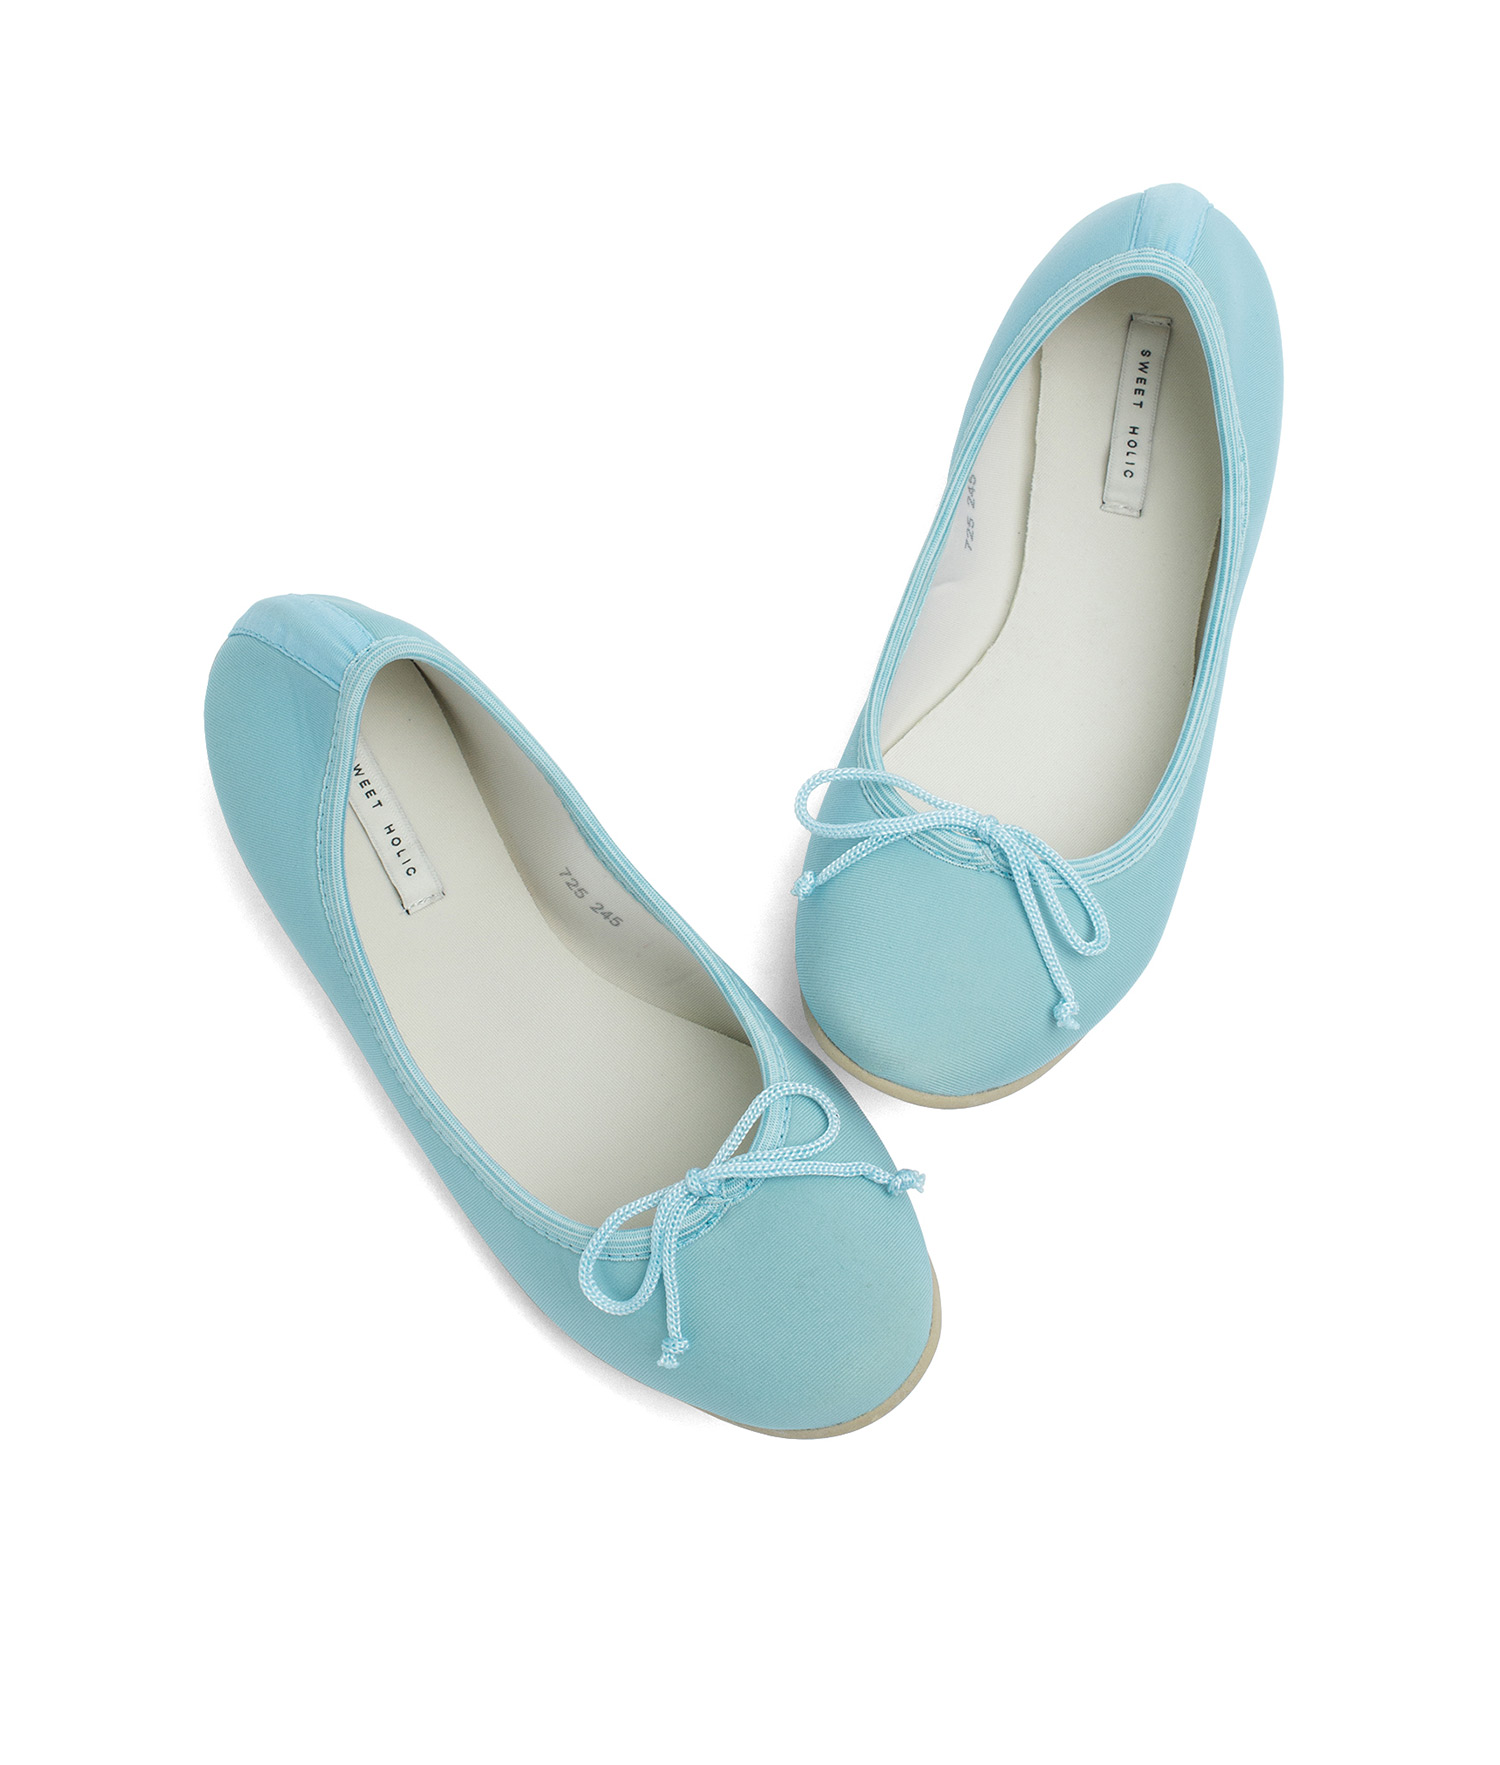 ddccafaaa97648 AnnaKastle Womens Neoprene Foldable Ballet Flats Cool Colors Light Blue